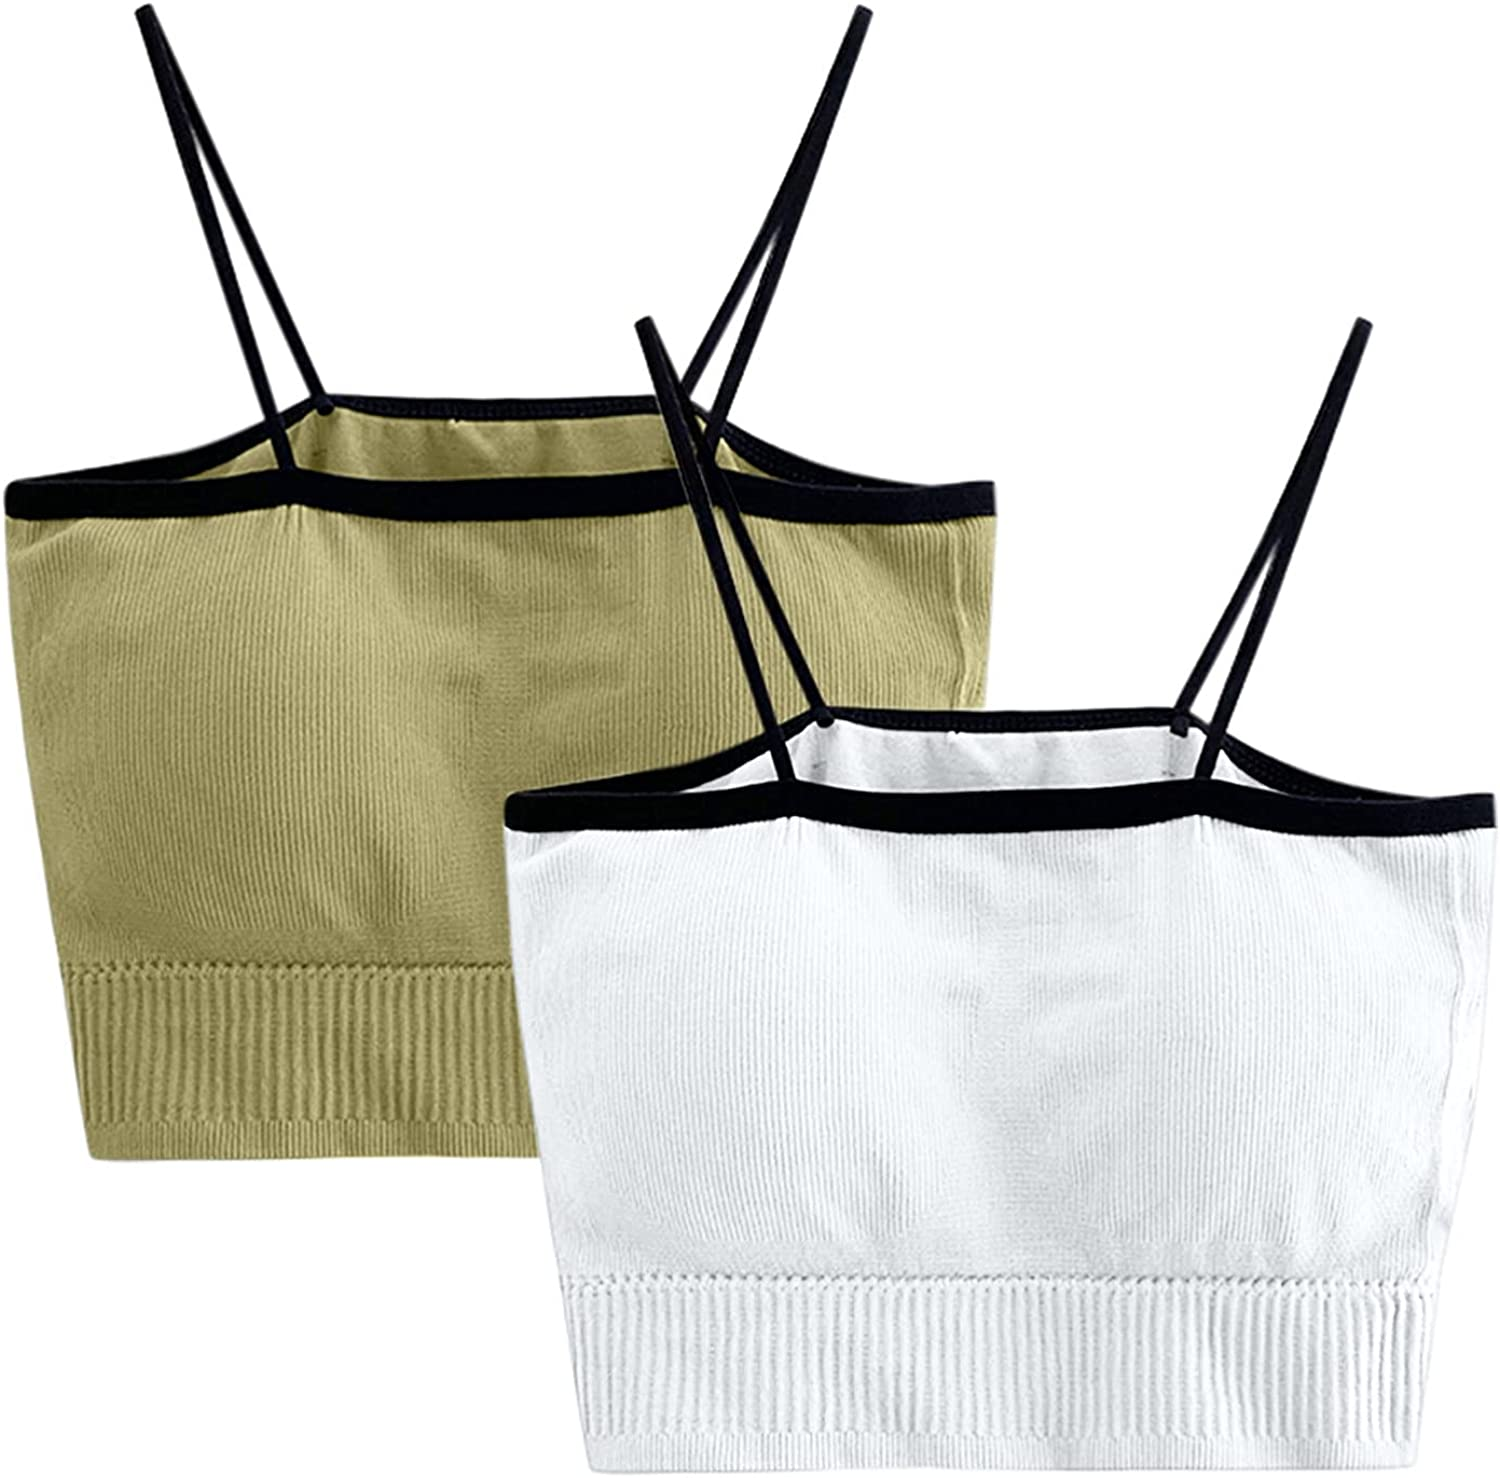 A2A Ribbed Knit Crop Top Tank for Women 2pc Solid Color Bra Seamless Padded Camisole Bandeau Tube Bra with Elastic Straps